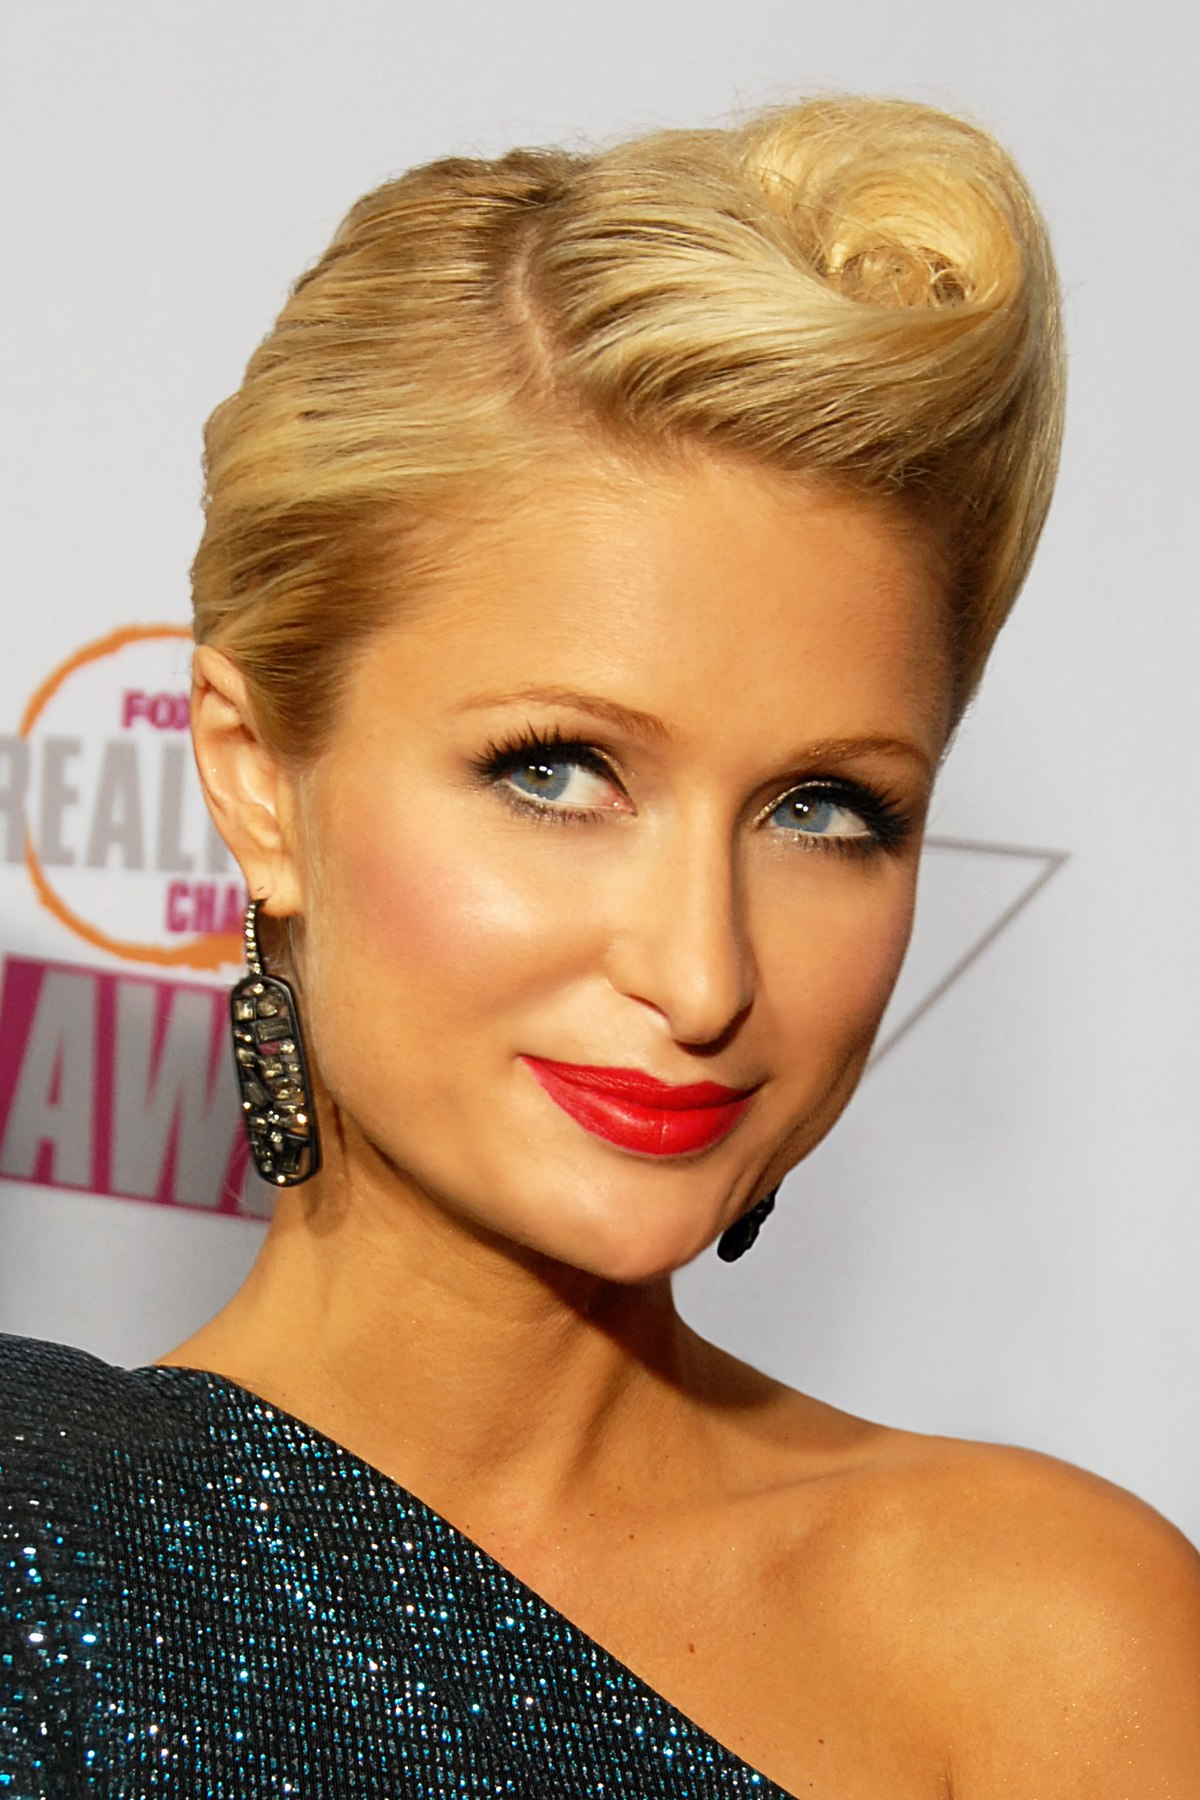 Paris Hilton - Wikipedia Paris Hilton